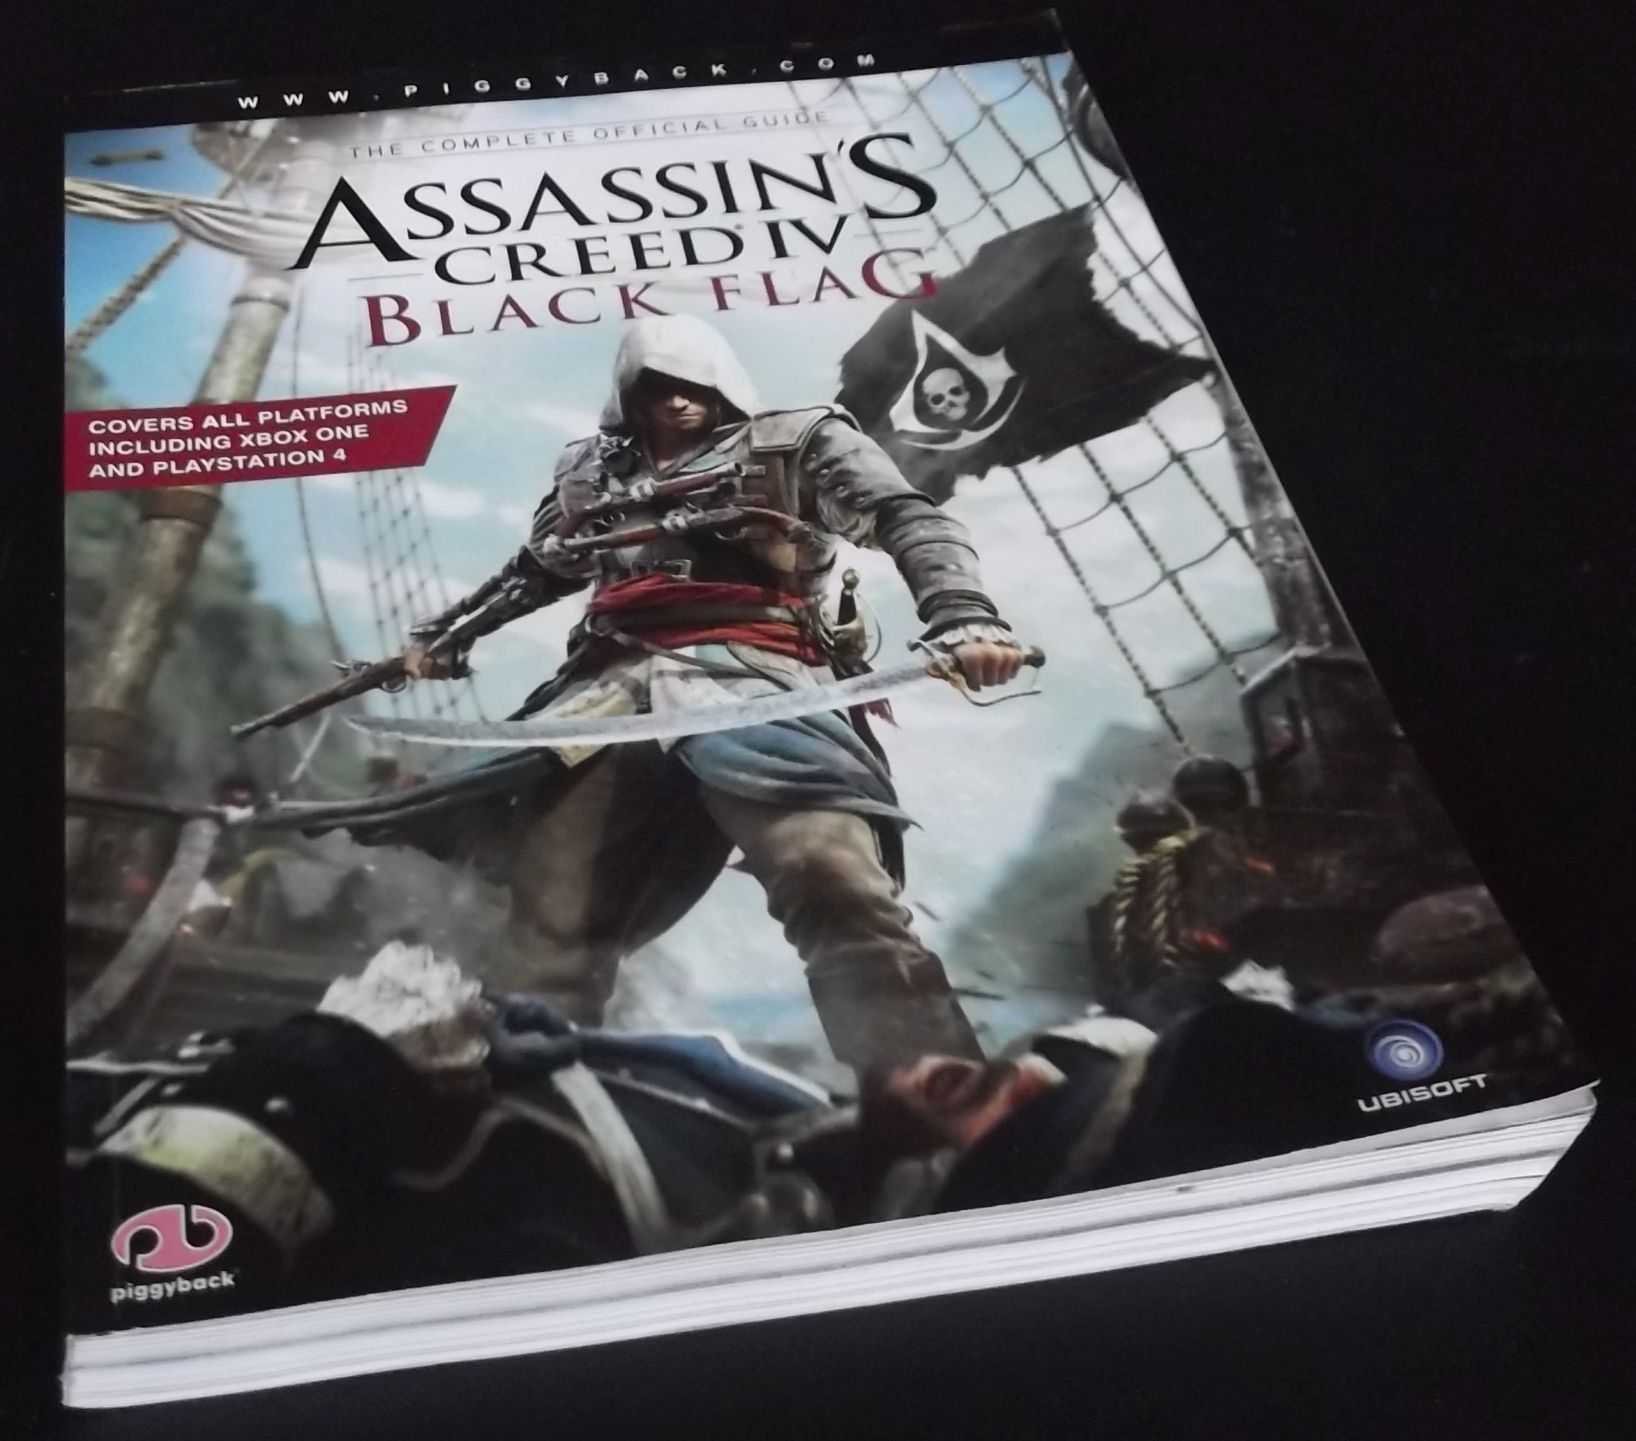 PIGGYBACK - Assassin's Creed IV Black Flag - the Complete Official Guide